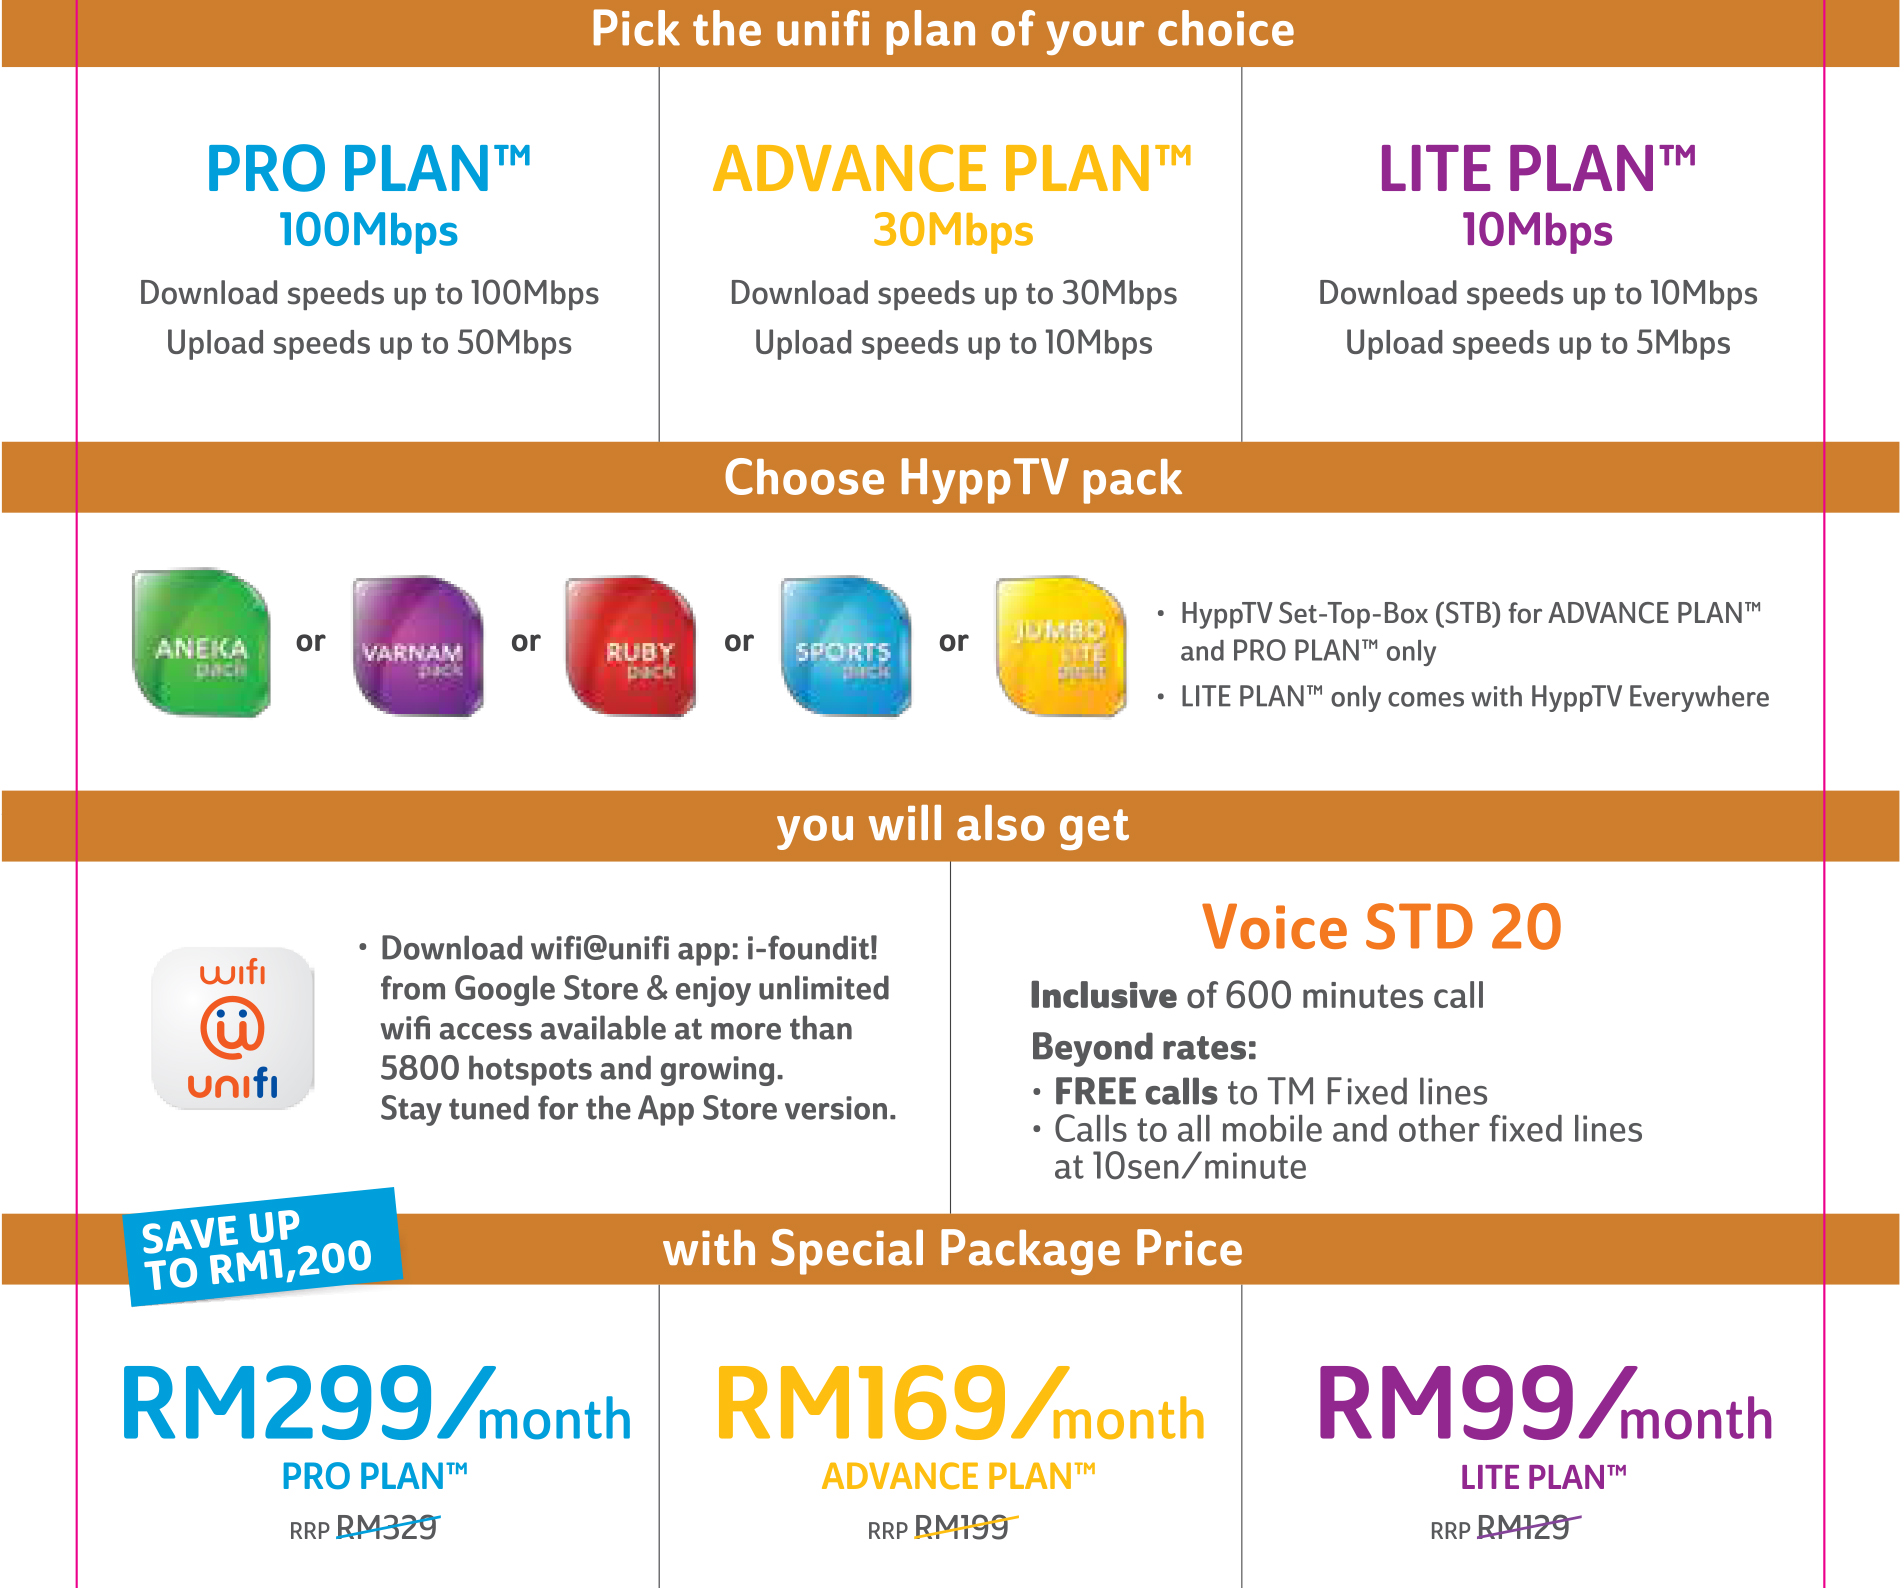 Newsroom Unifi Ebiz And Edu Packages To Boost Technopreneurs Businesses And Students Learning On Digital Platform